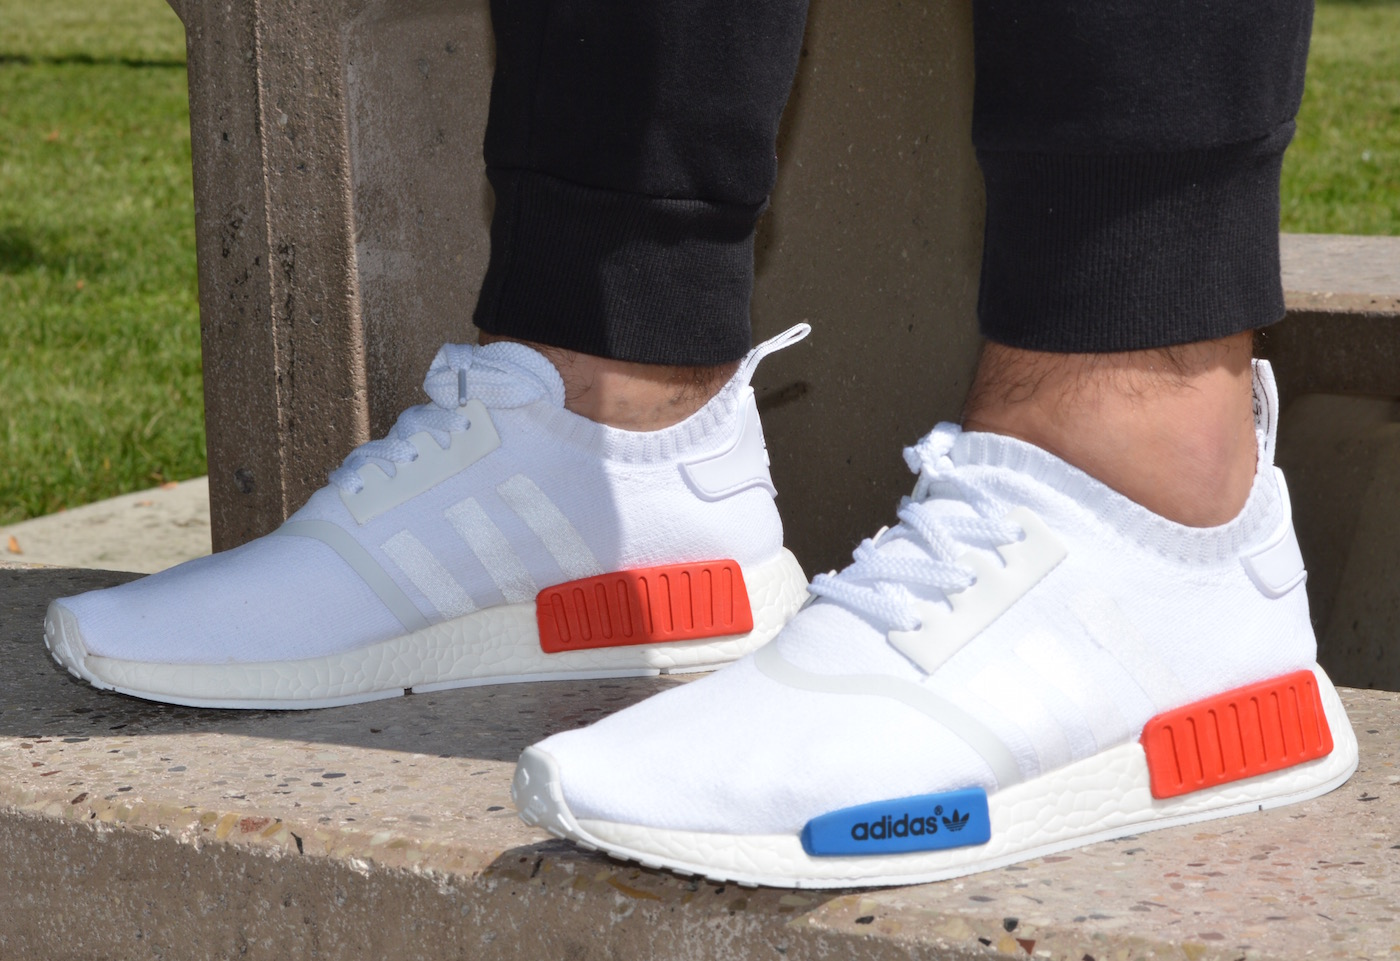 hxjelx Adidas Nmd Red And White packaging-news-weekly.co.uk